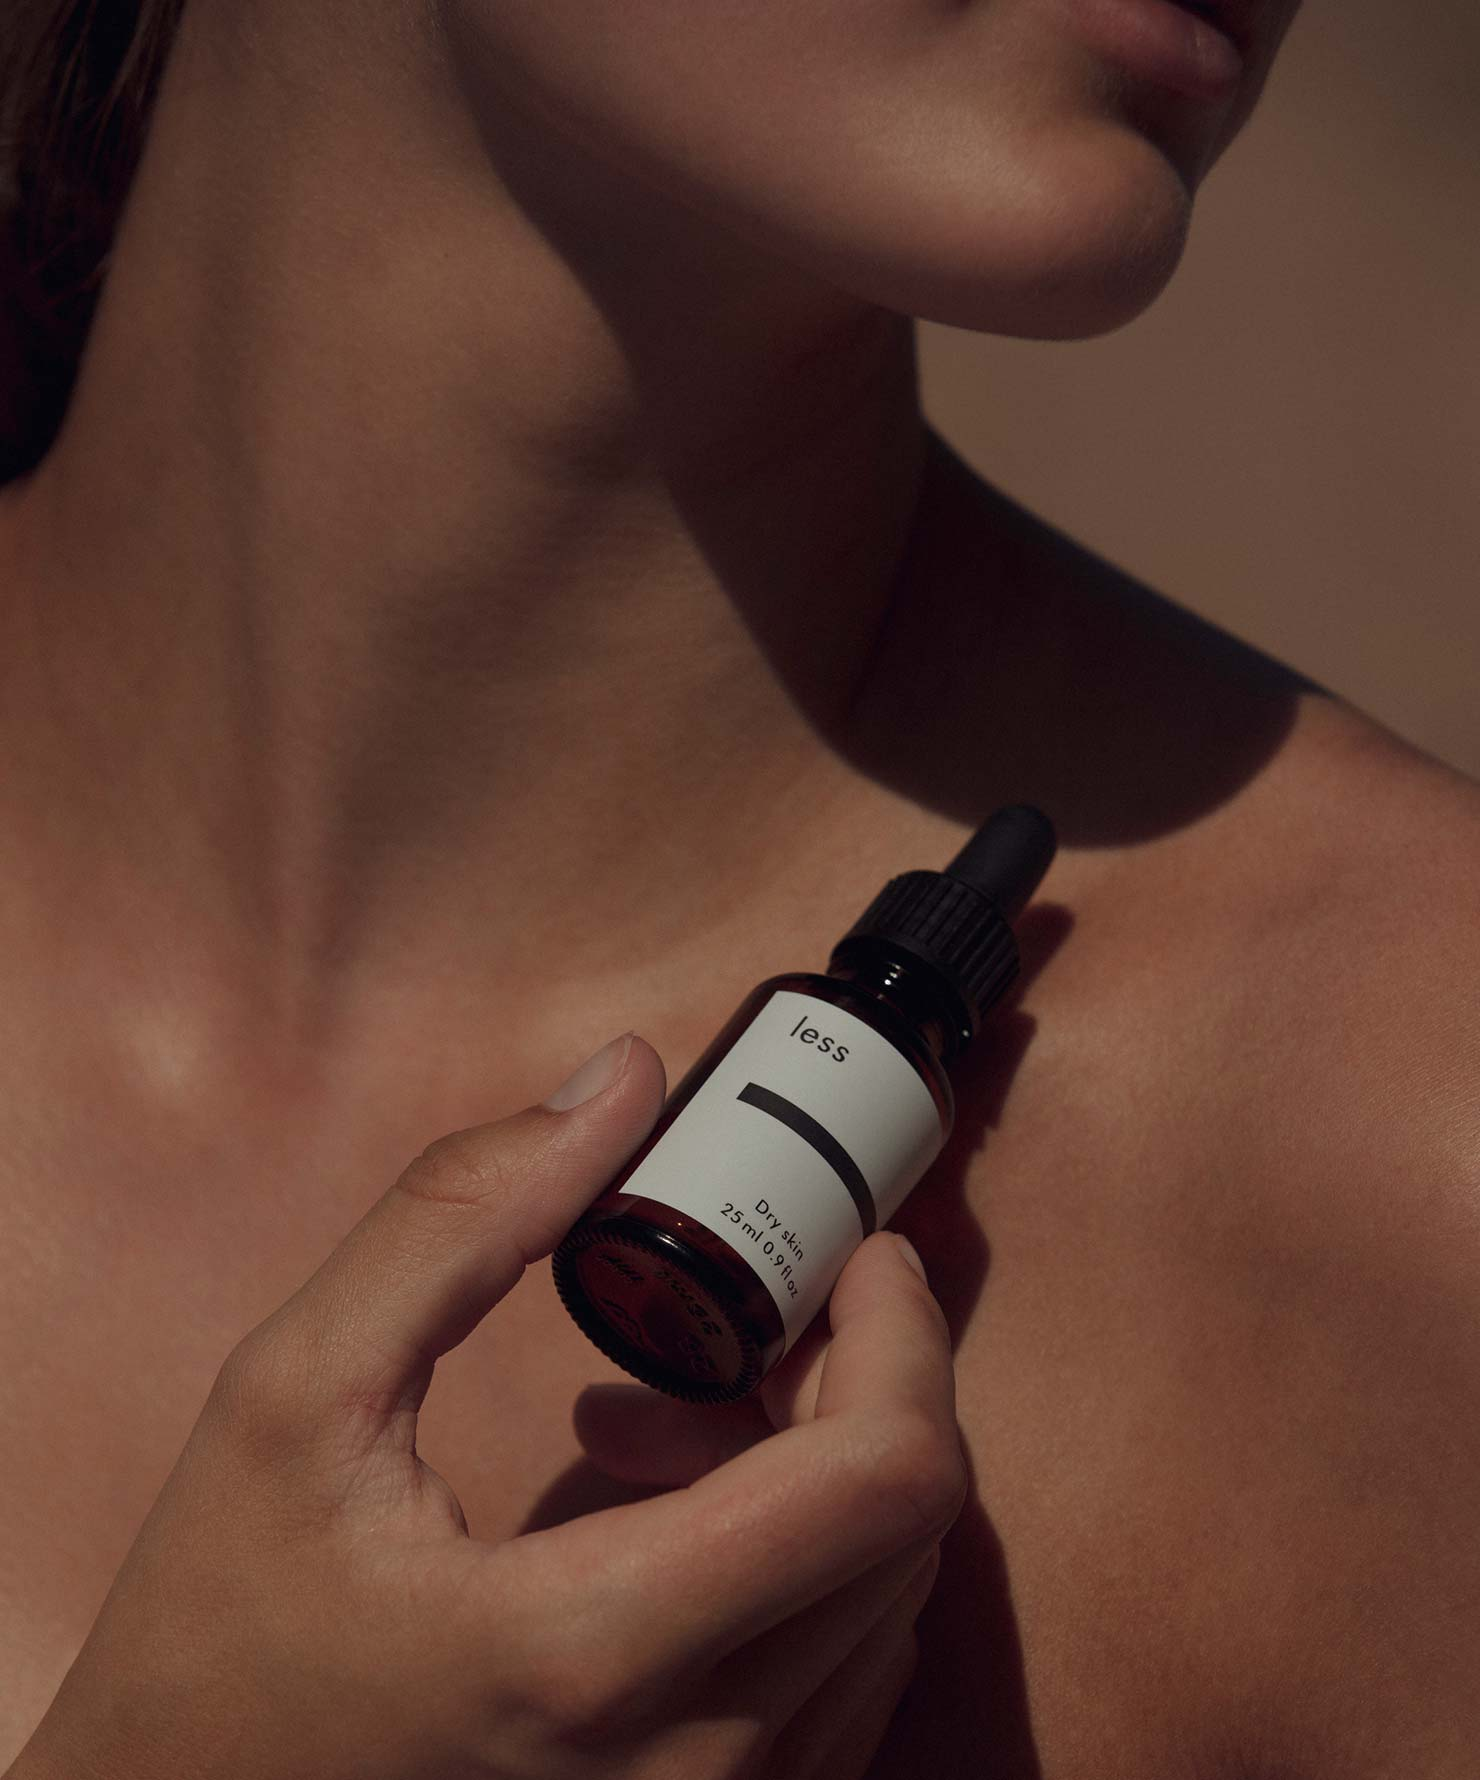 Less Skin Care Face Oil Hautpflege Gesichtsöl